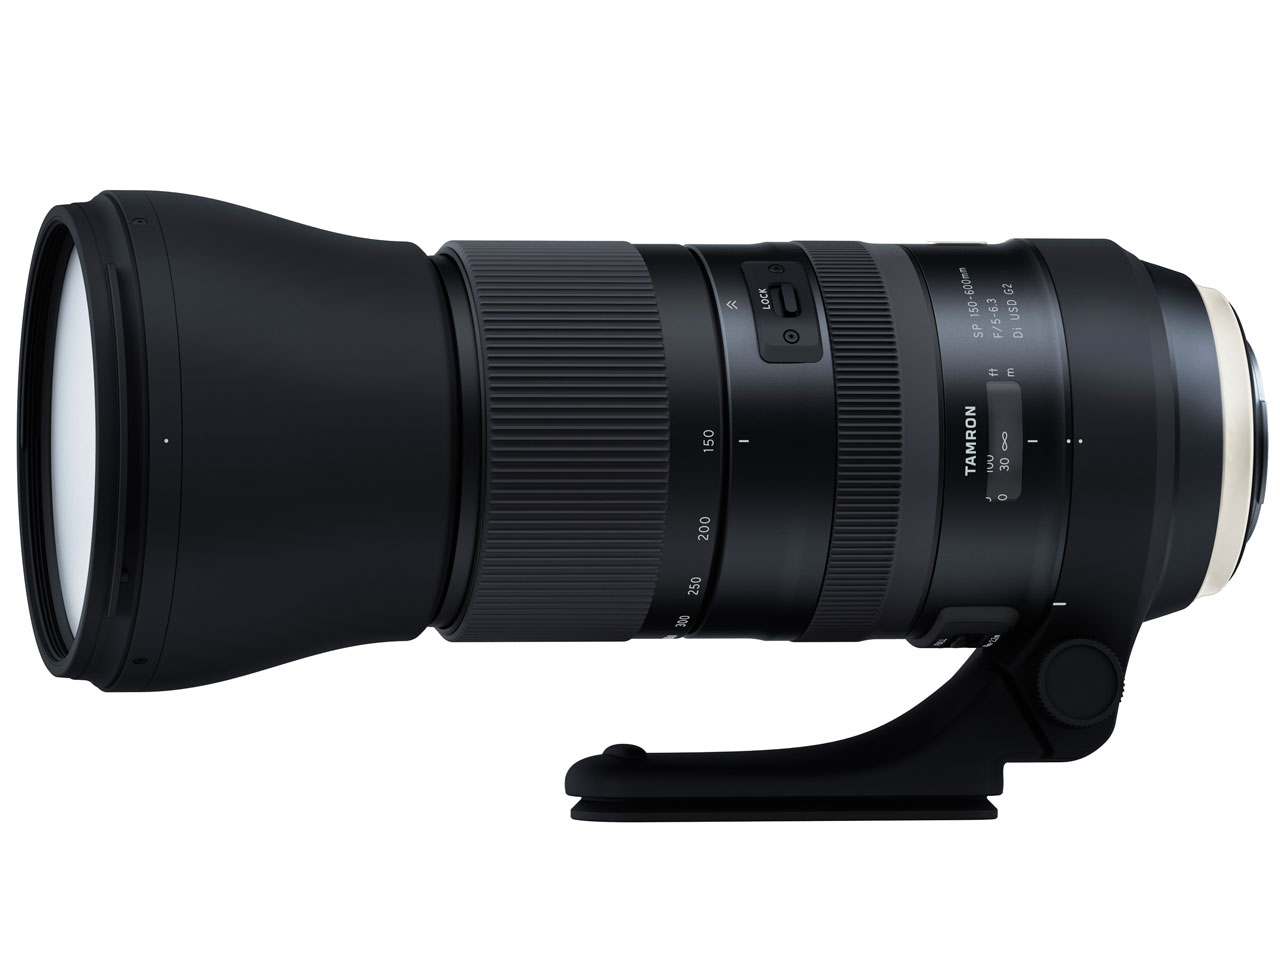 SP 150-600mm F/5-6.3 Di USD G2 (Model A022) [ソニー用]